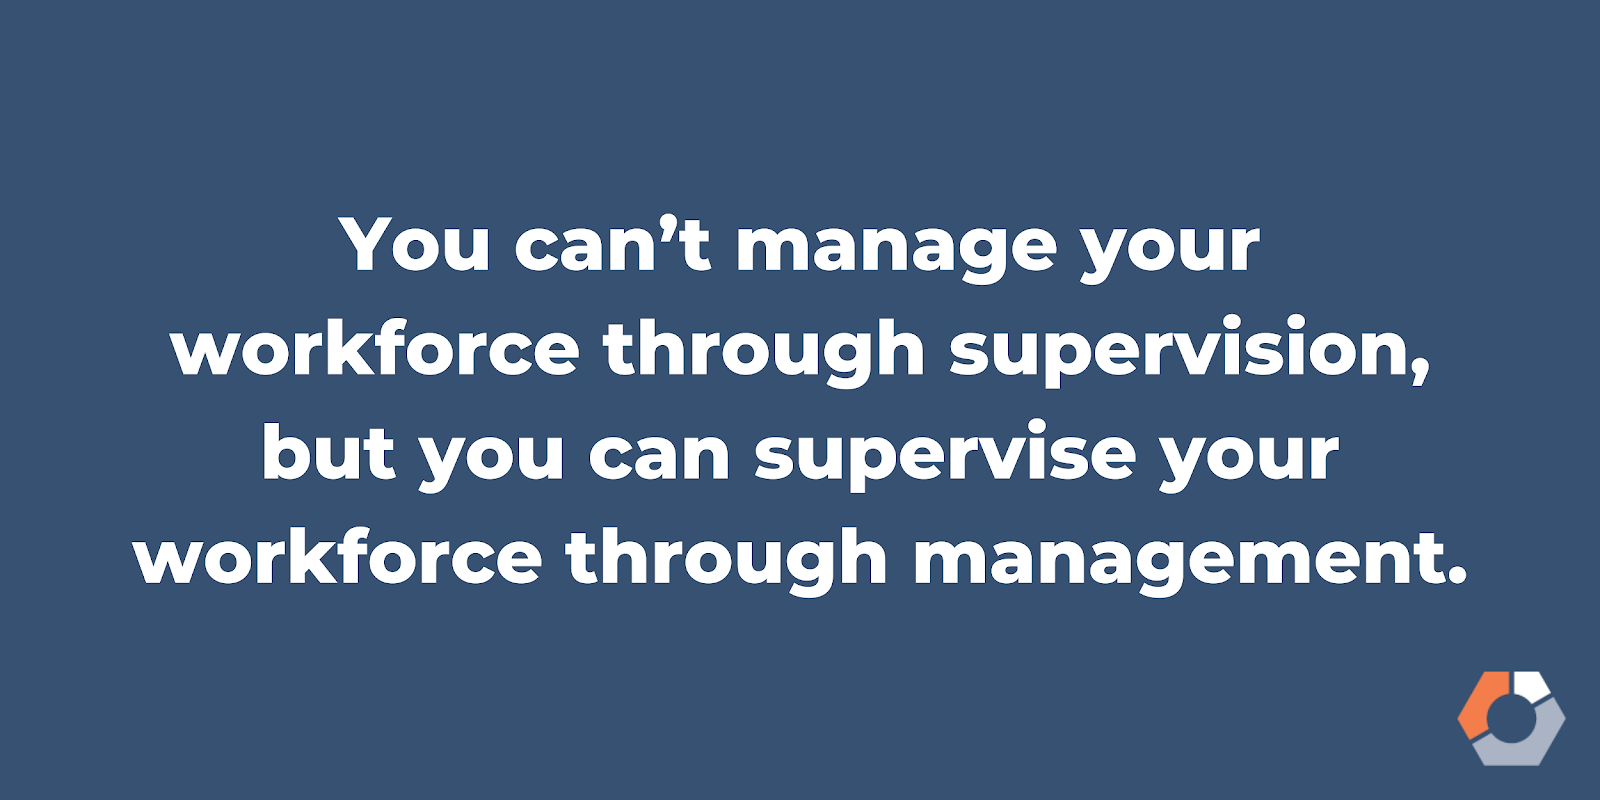 """This image reads, """"You can't manage your workforce through supervision, but you can supervise your workforce through management."""""""